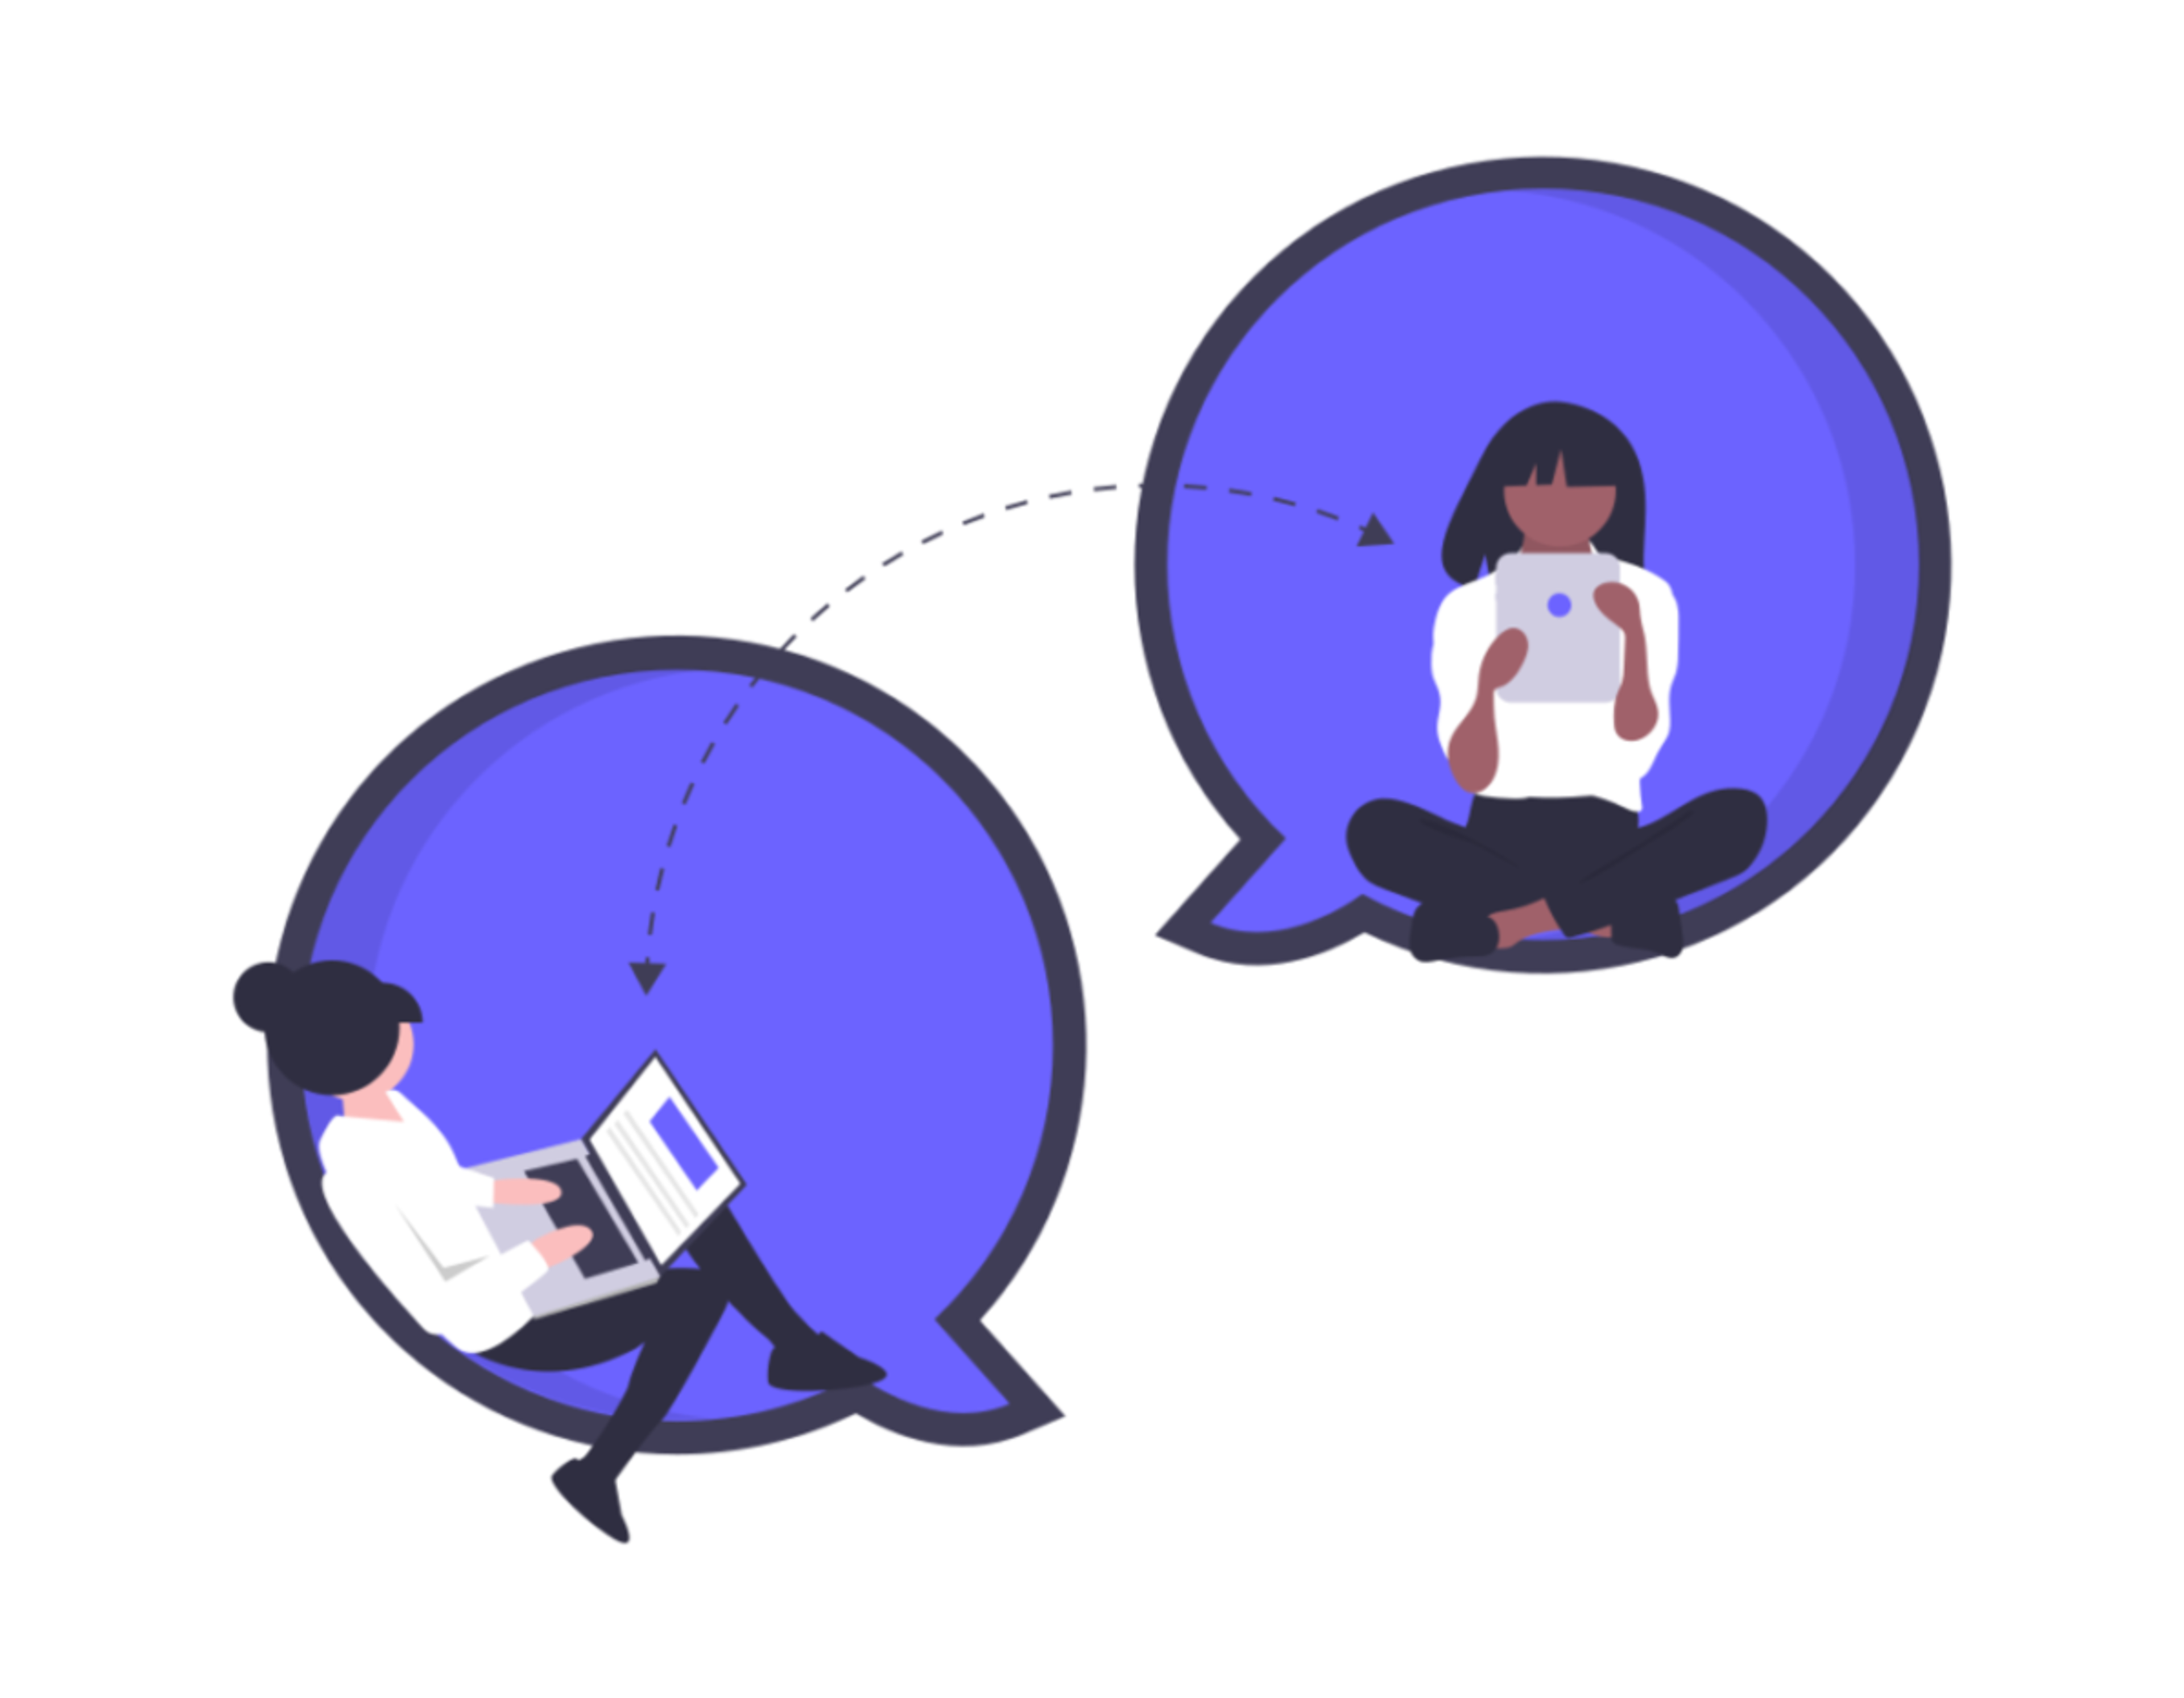 Illustration of two coworkers doing real time remote collaboration